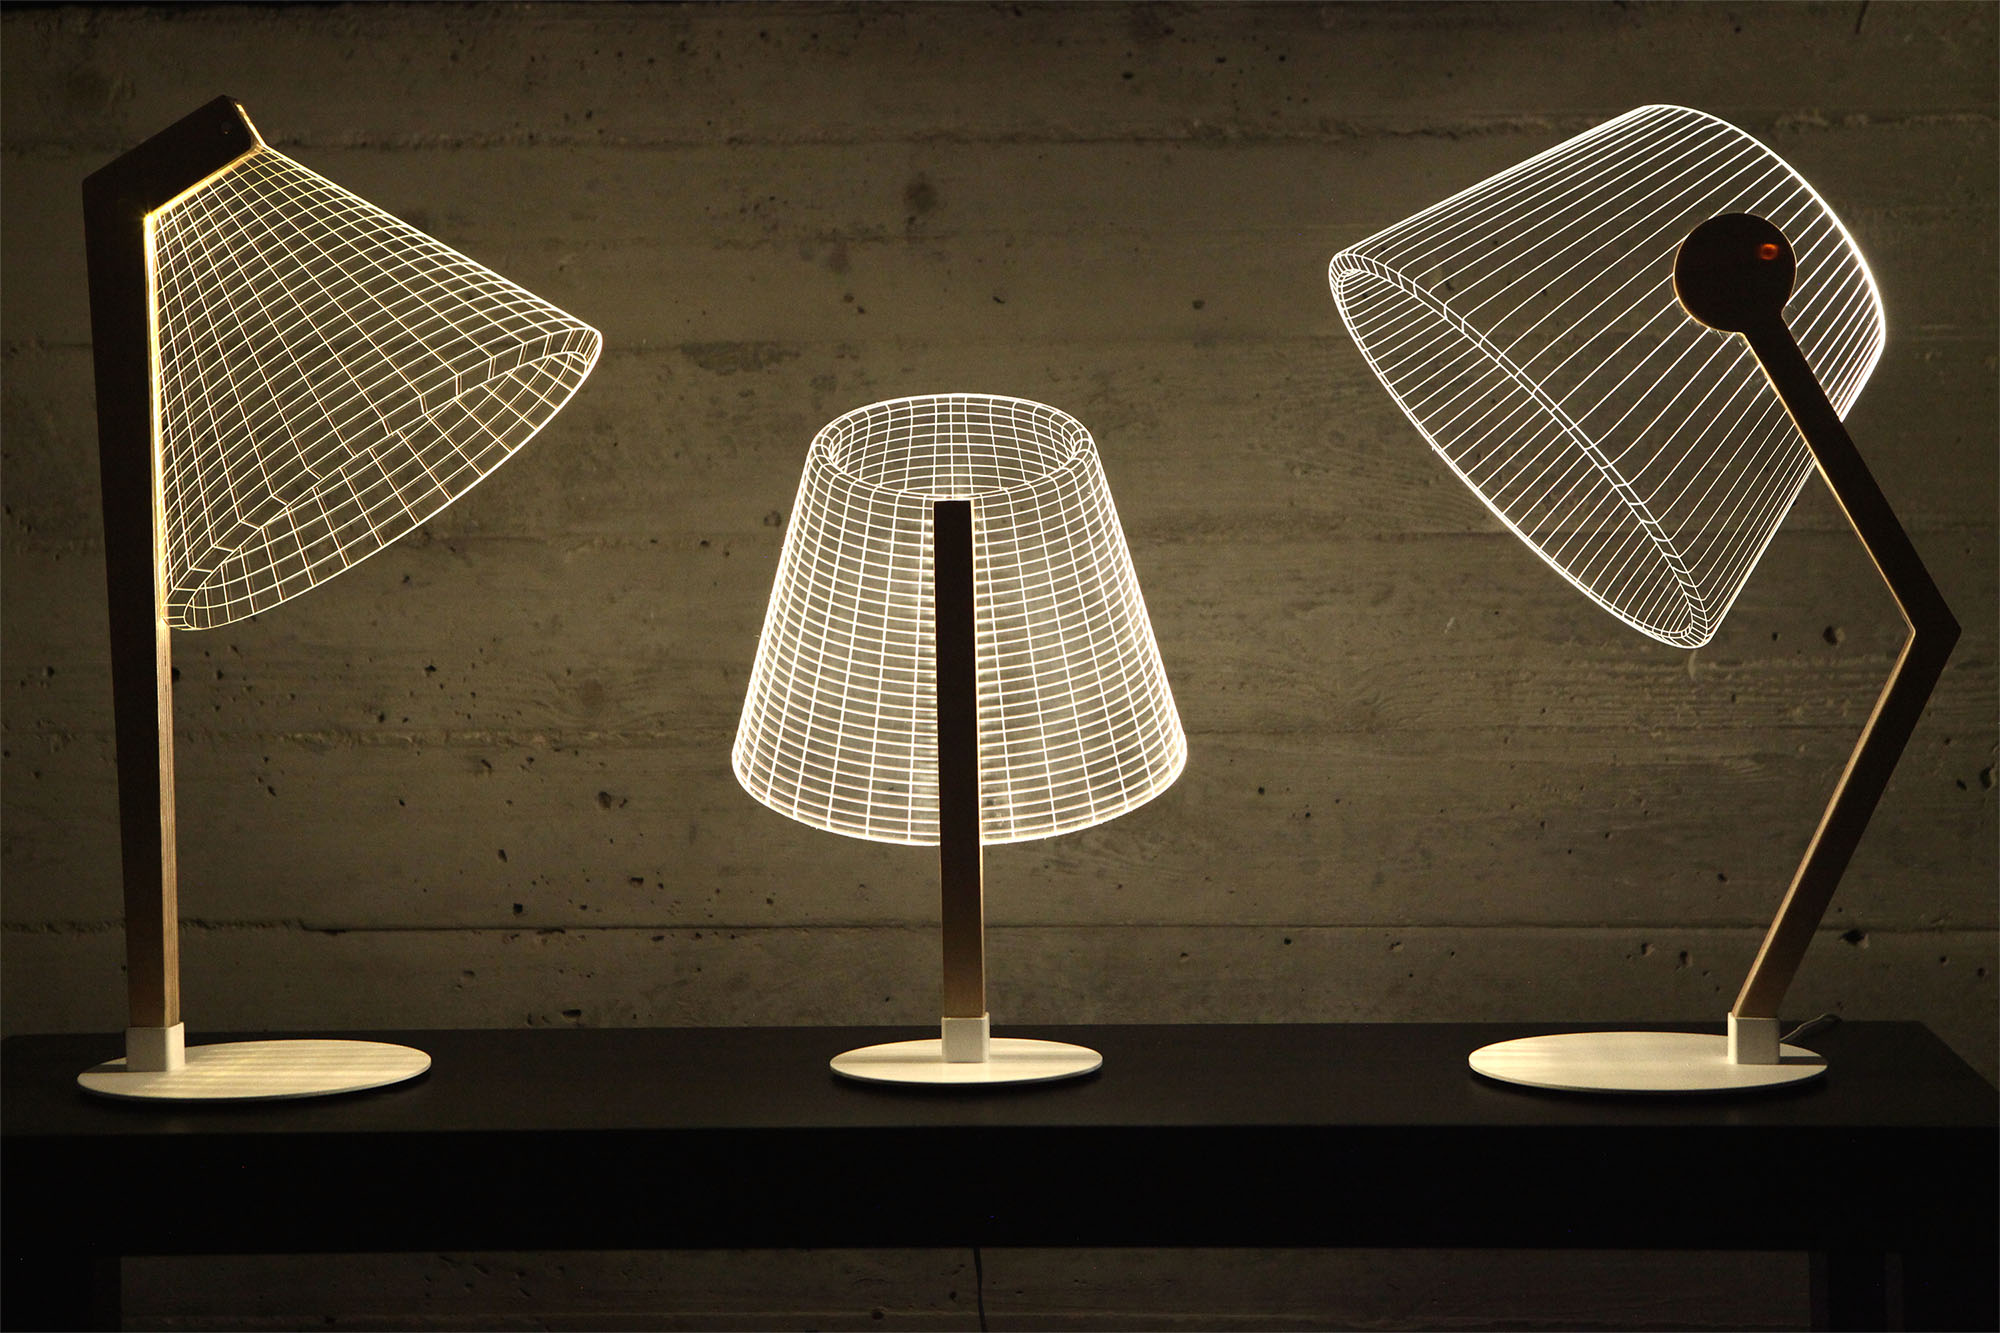 The ZIGGi, DESKi and CLASSi form the new ByBulbing Collection from Studio Cheha